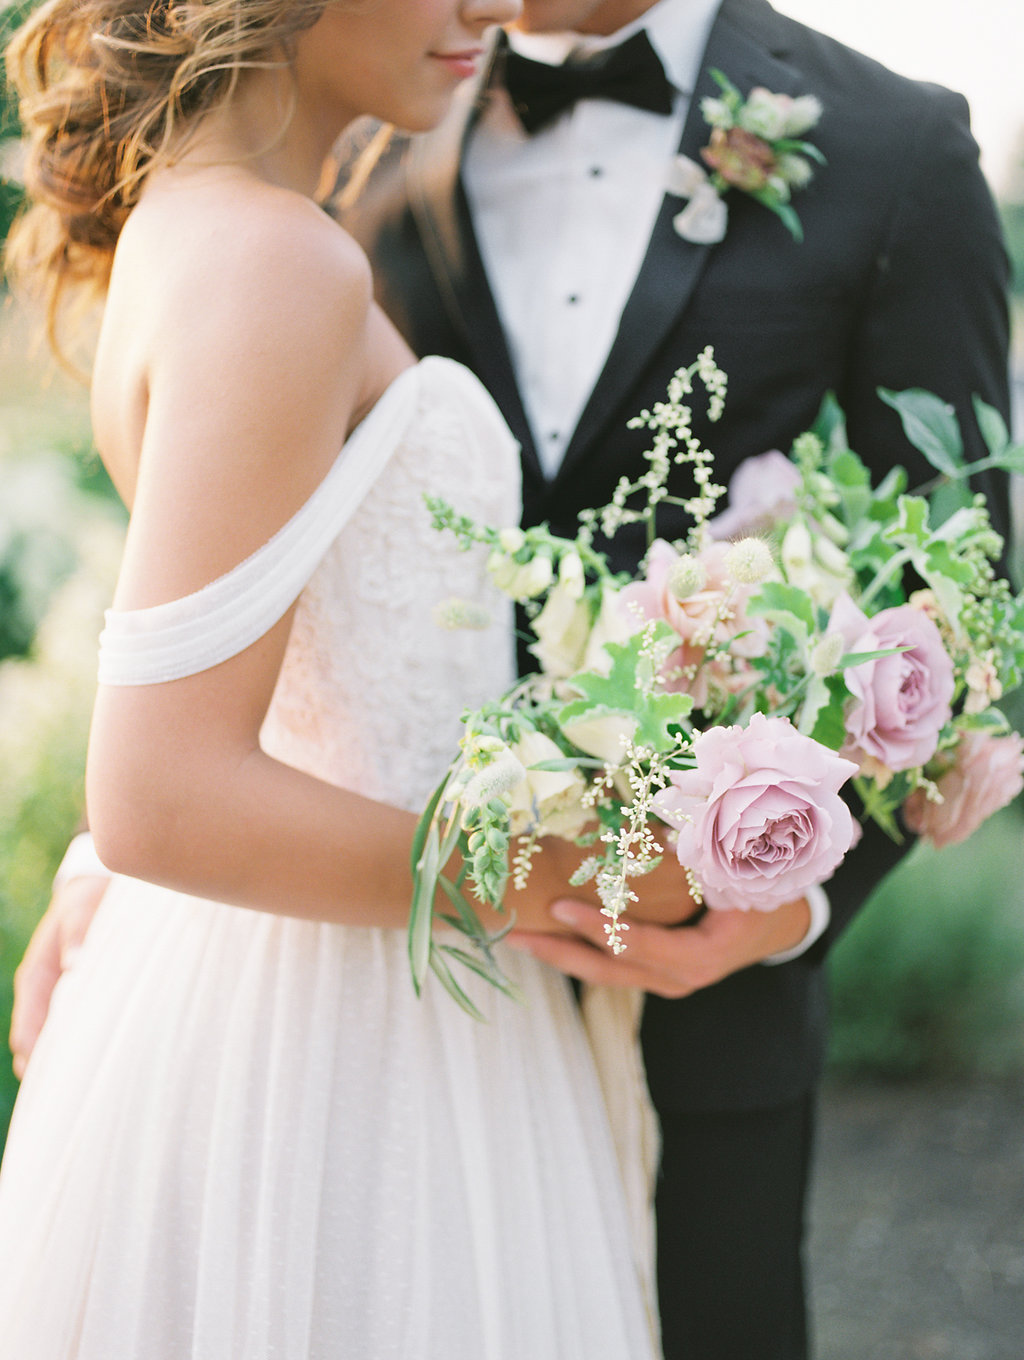 LuxProvenceWeddingInspired-SavanMentorshipbyJonandMochPhotography(56of75).jpg